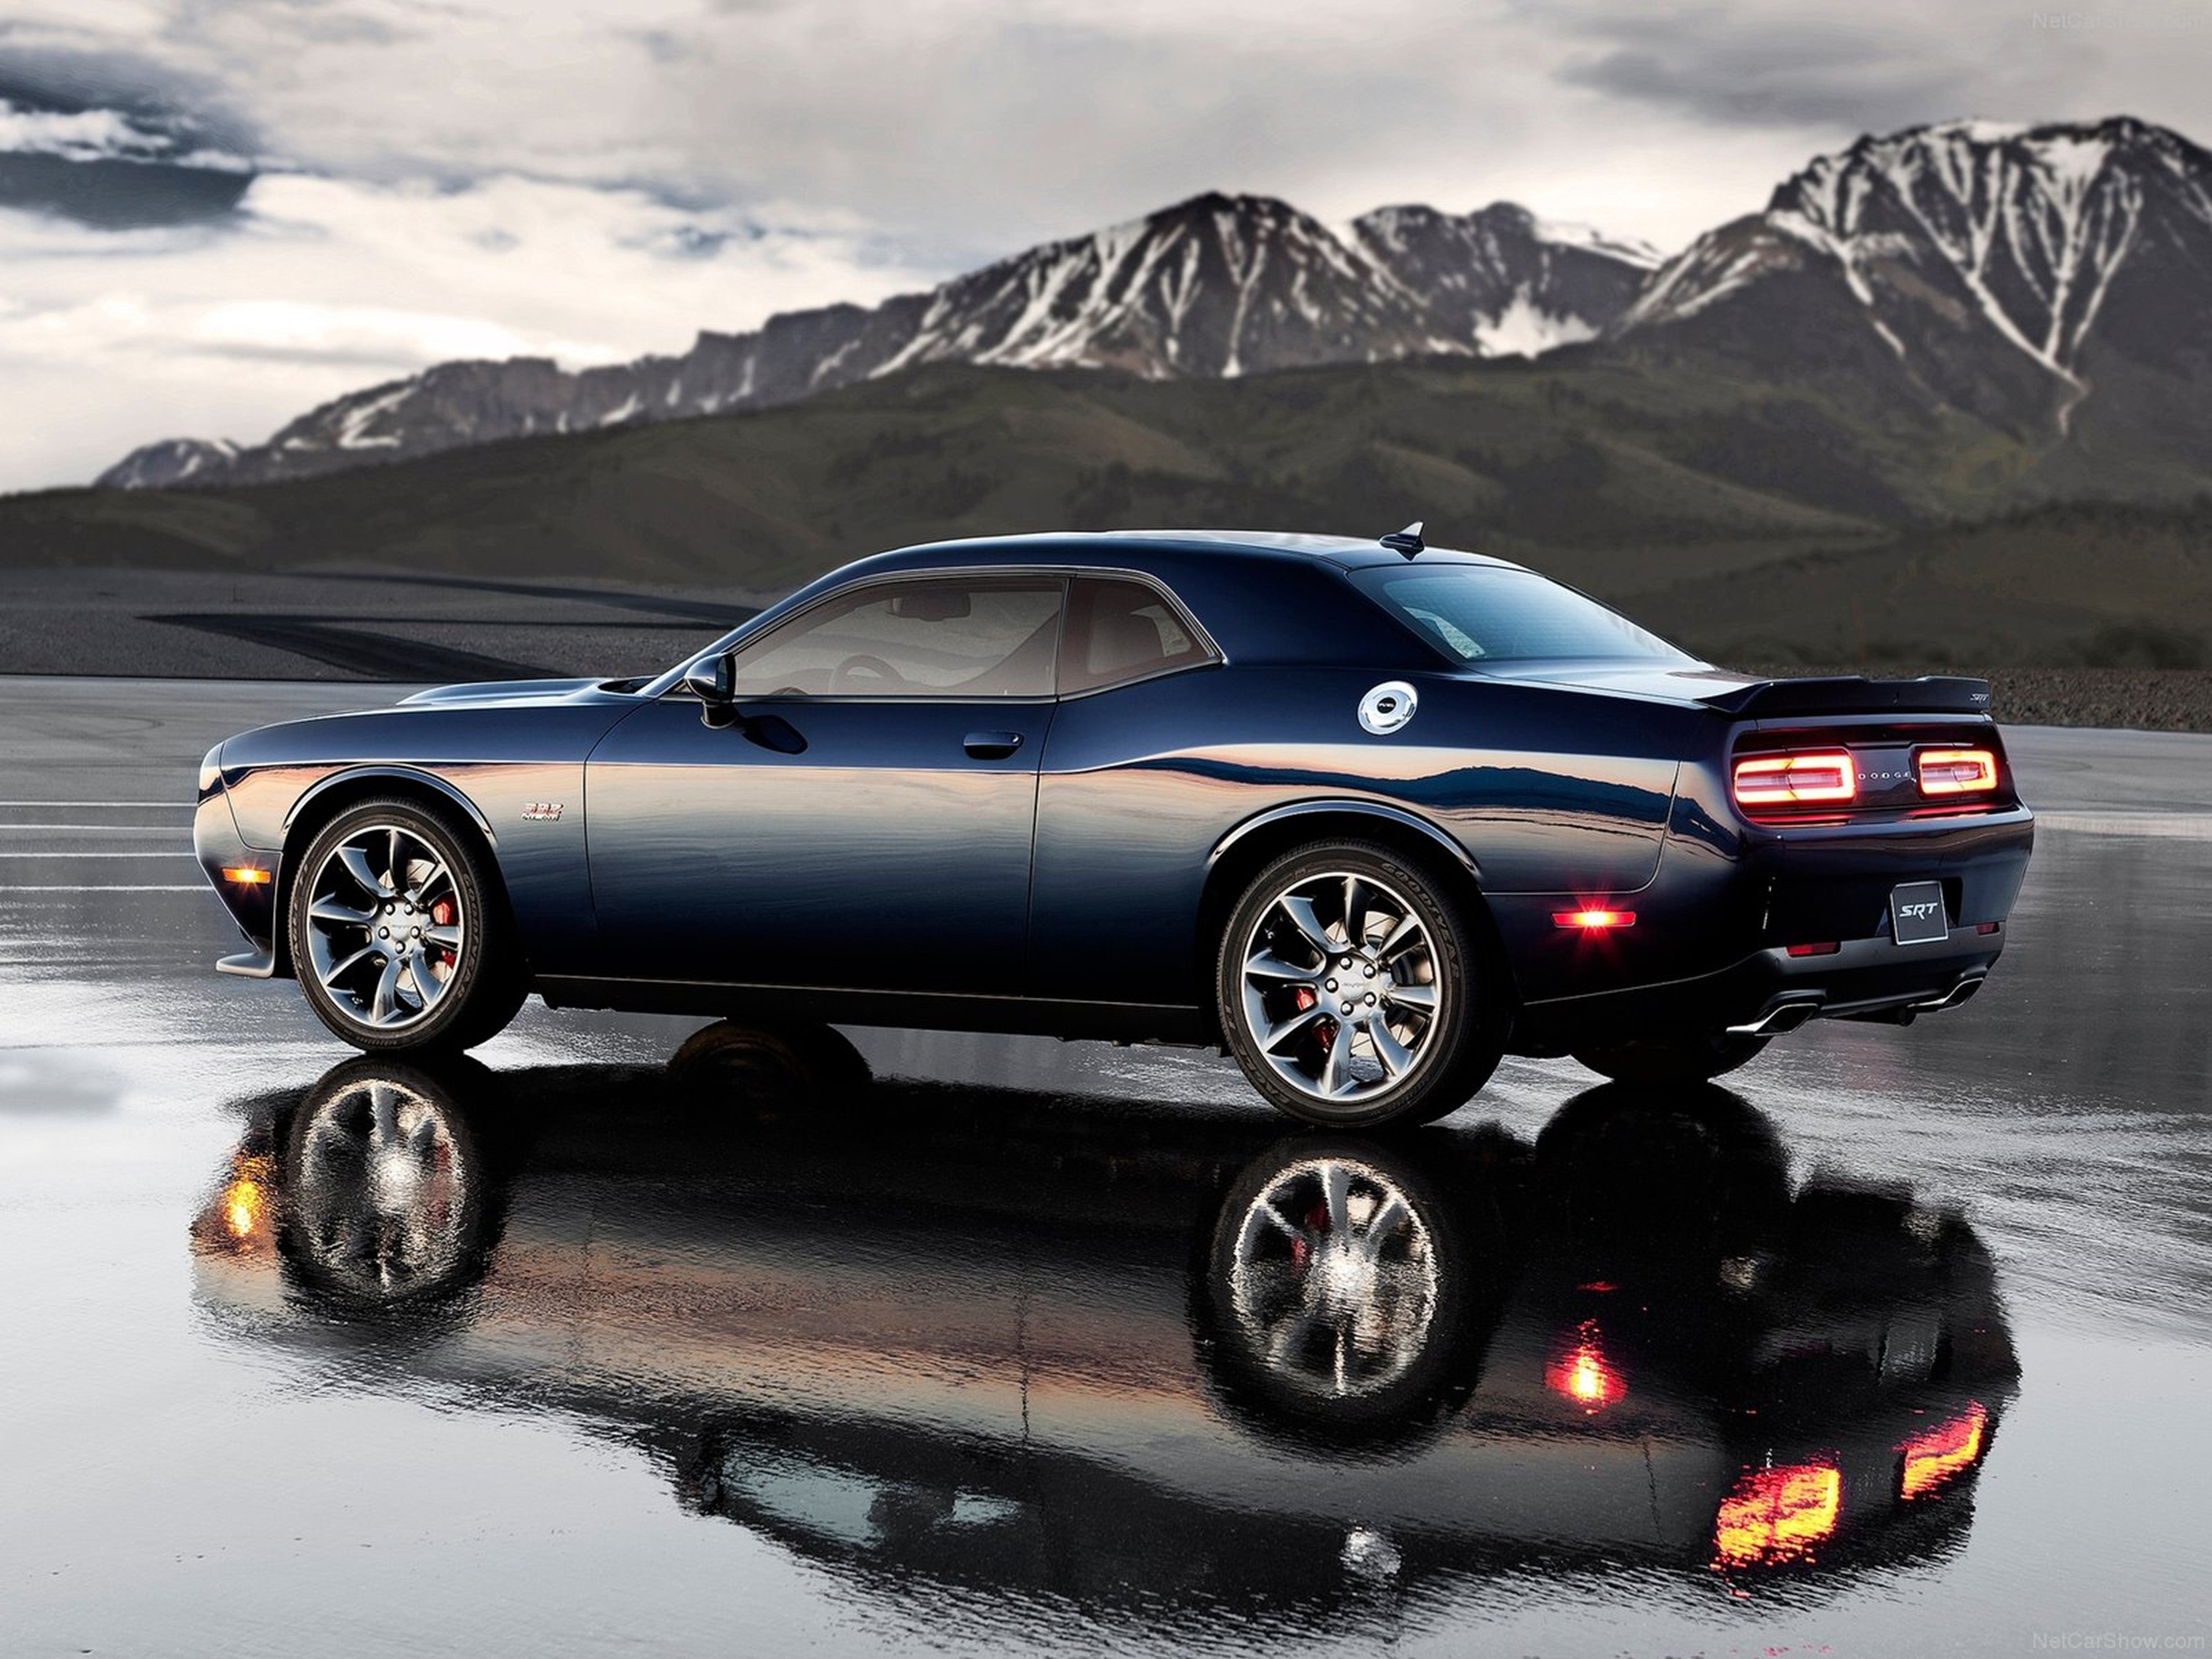 Dodge Challenger SRT 2015 Muscle Car Car Sport Black Wallpaper 4000x3000